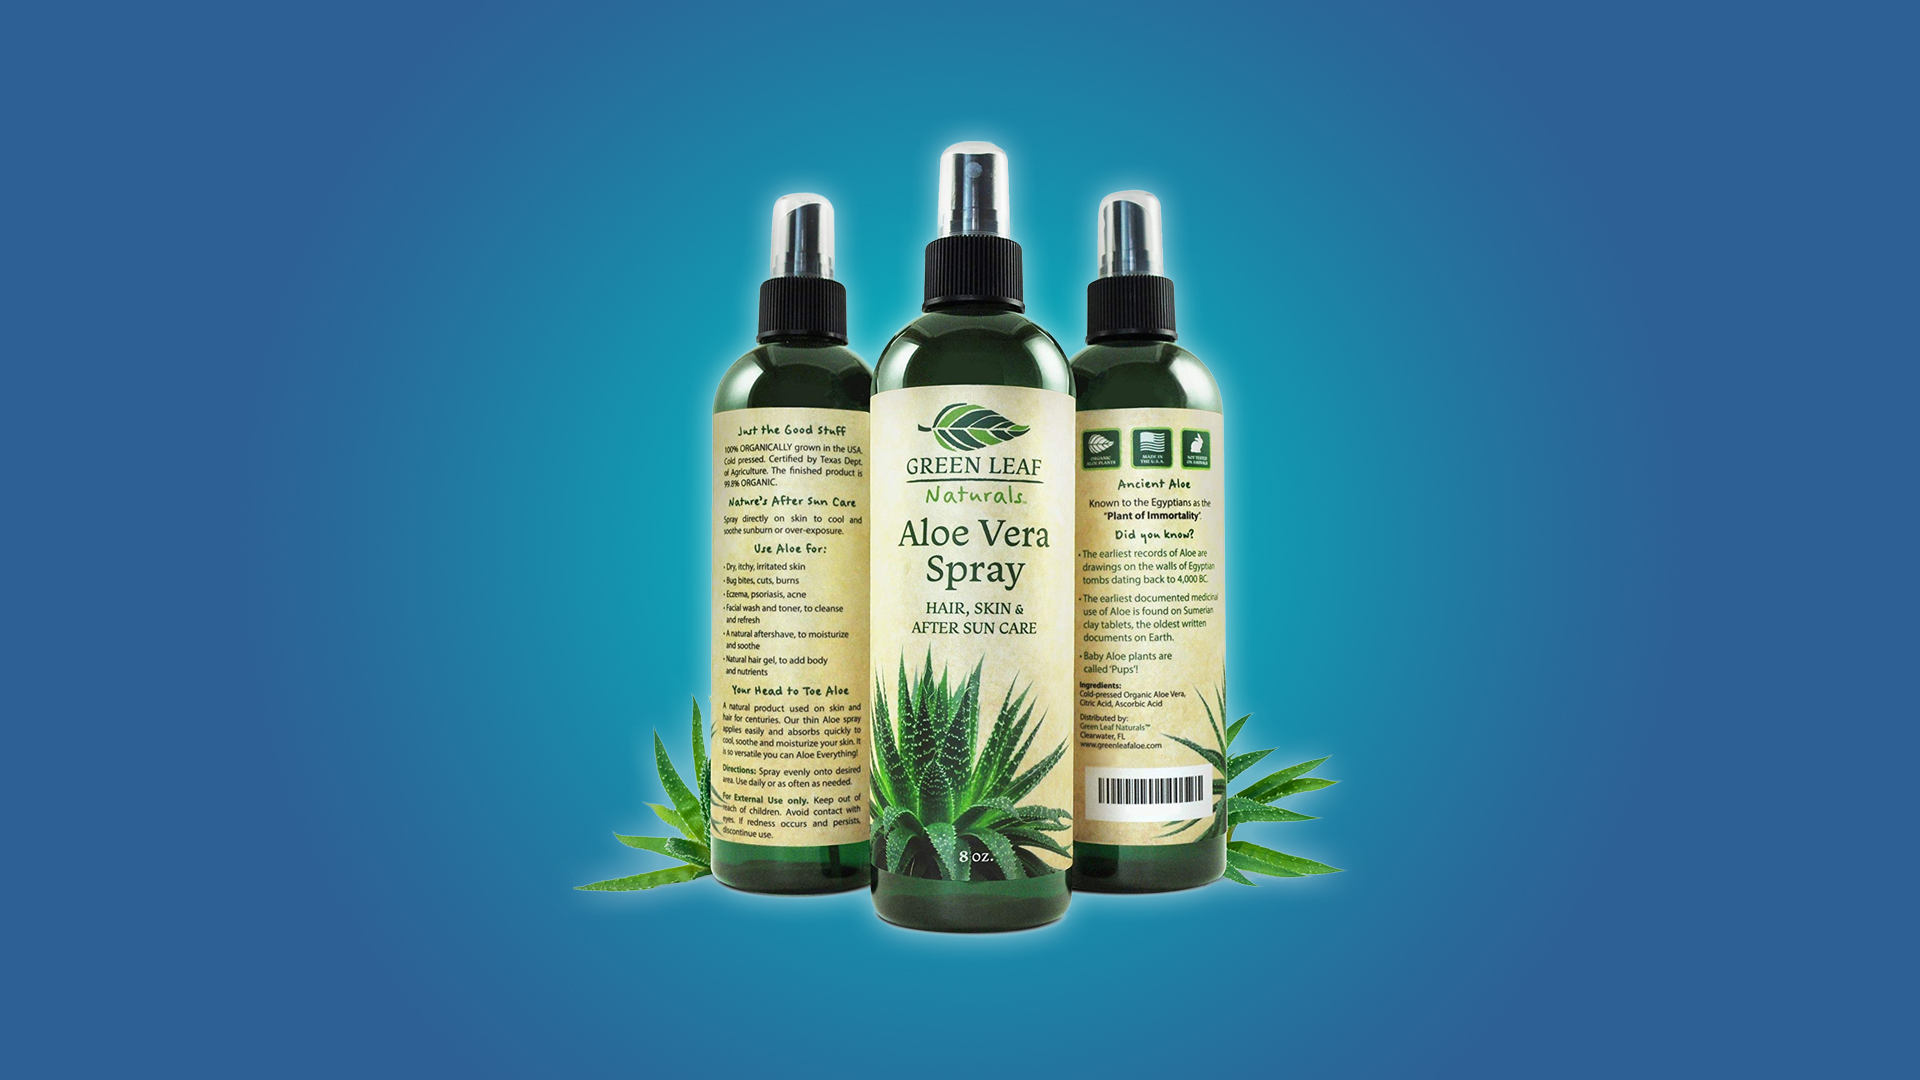 The Green Leaf Aloe Spray